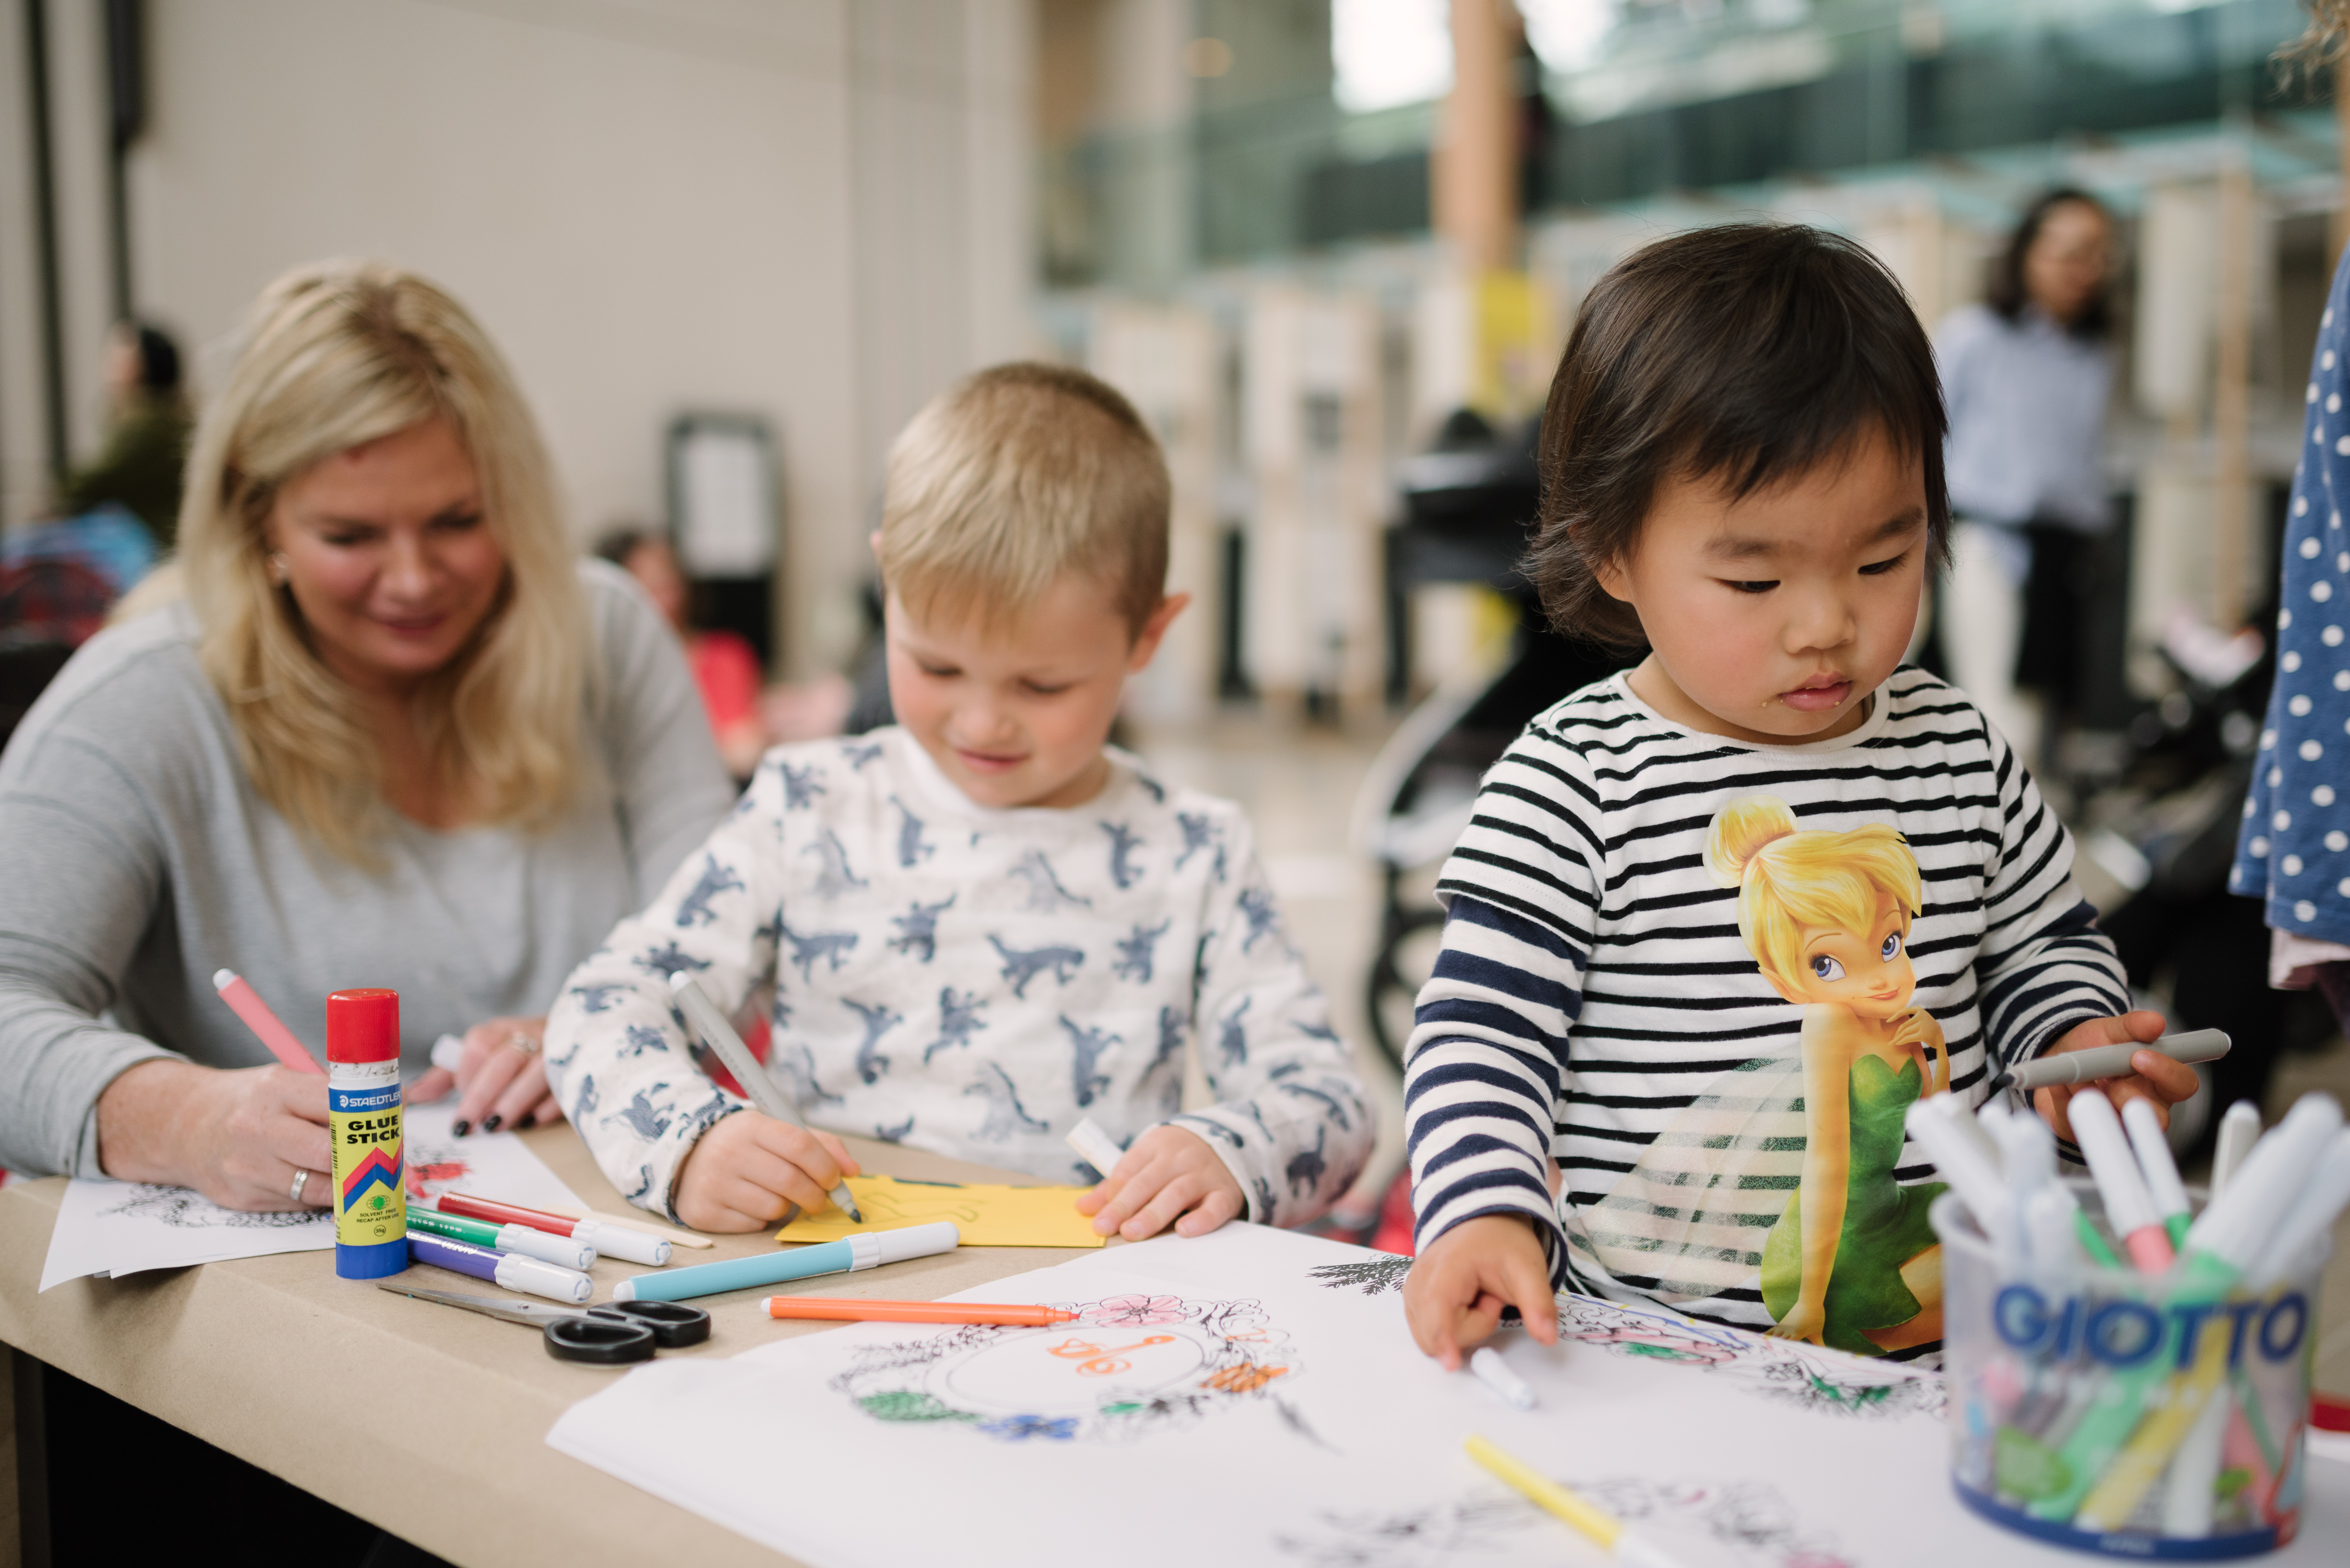 Whānau drop-ins – New activities each weekend!